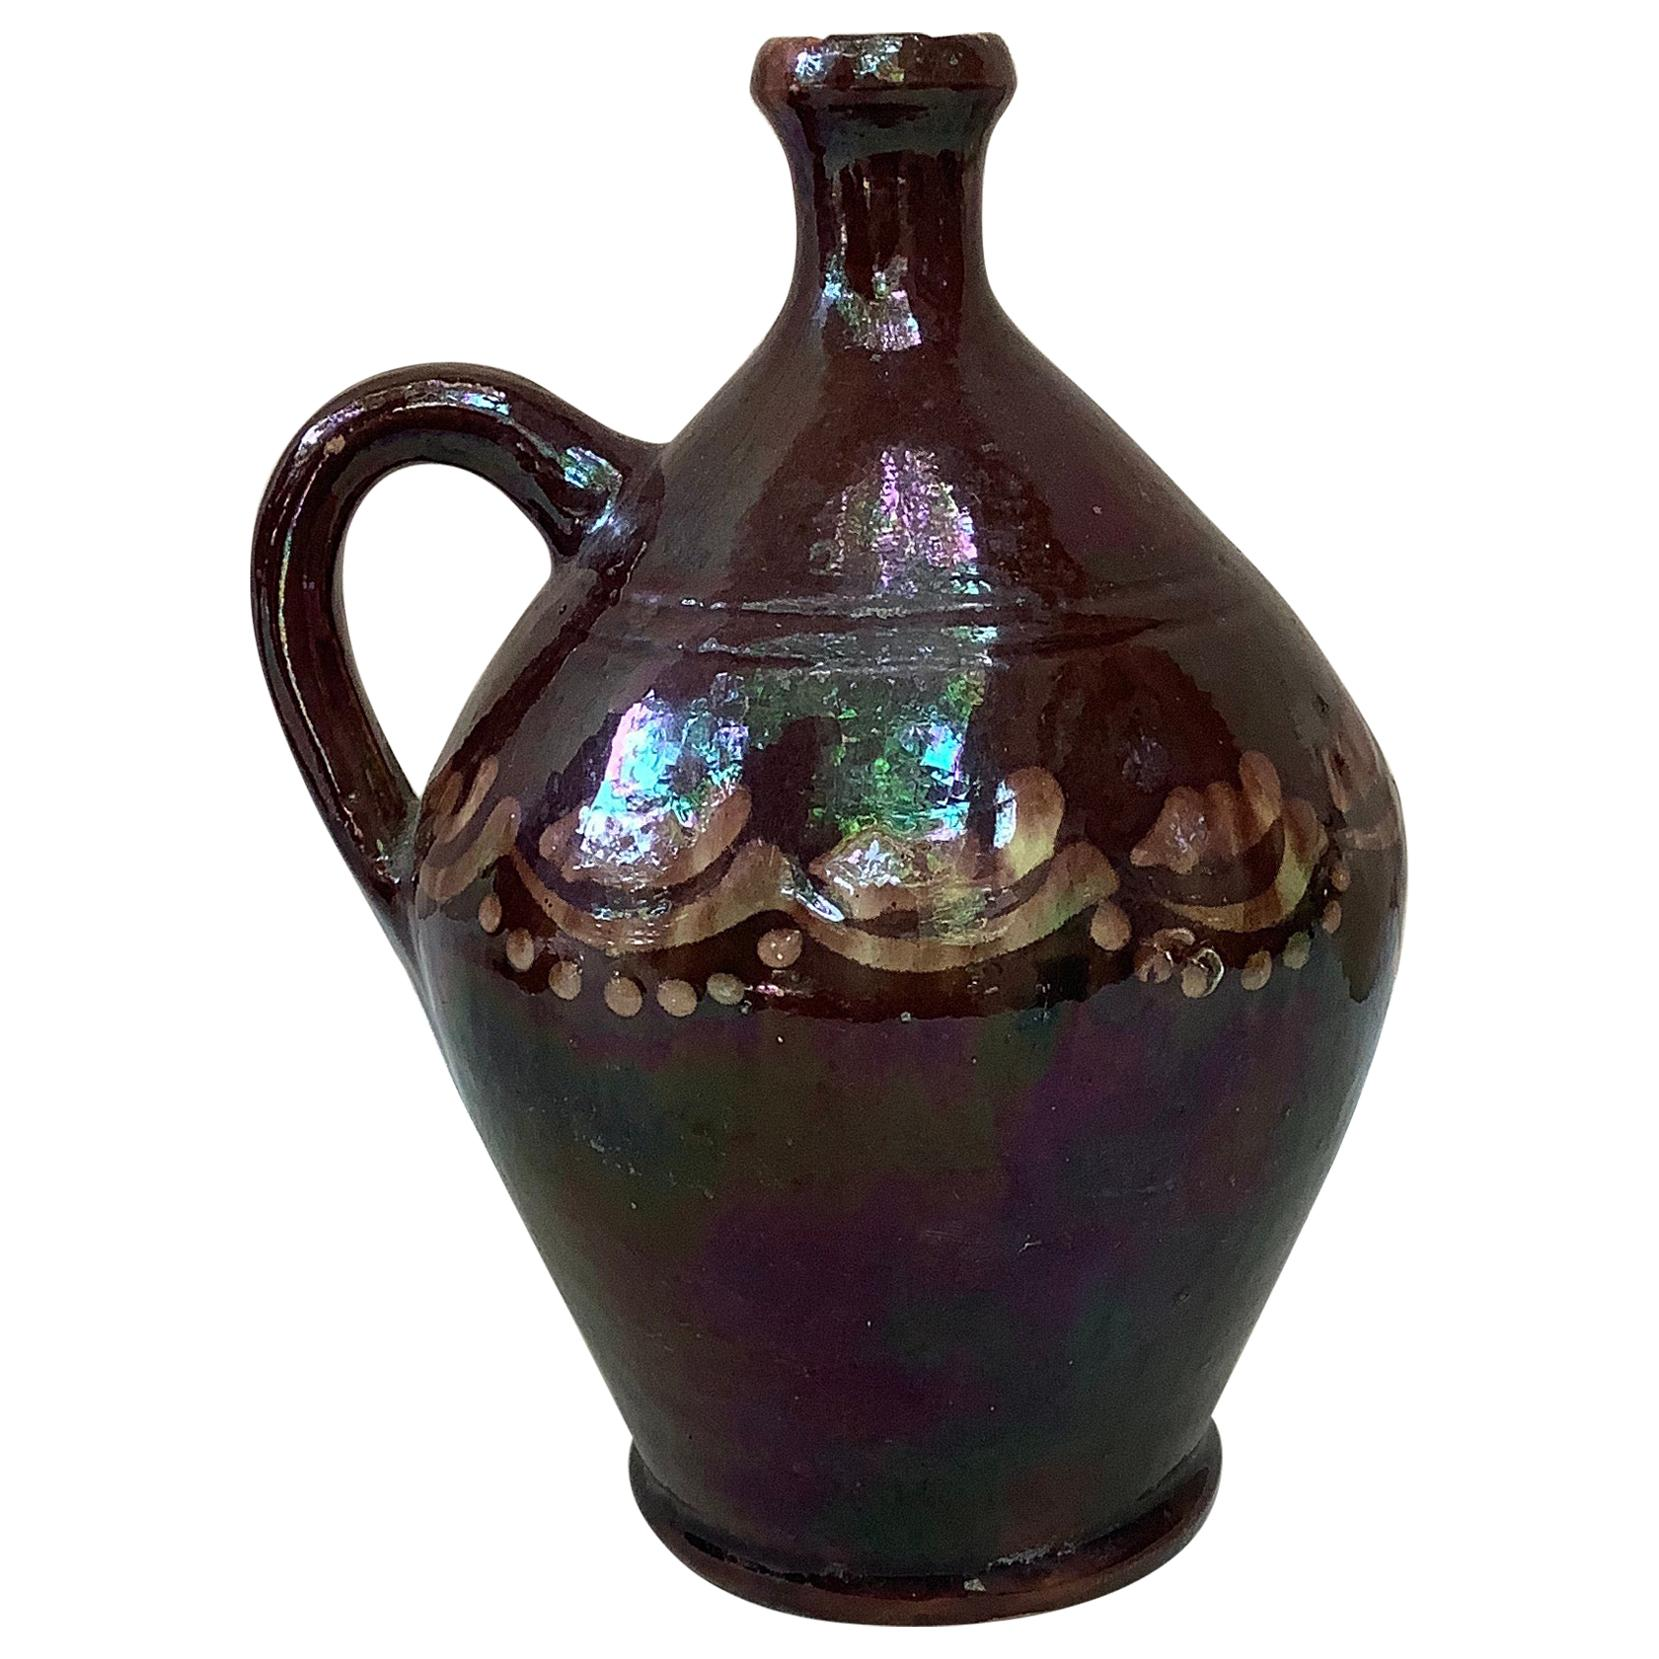 French Pottery Rustic Handled Pitcher, circa 1900